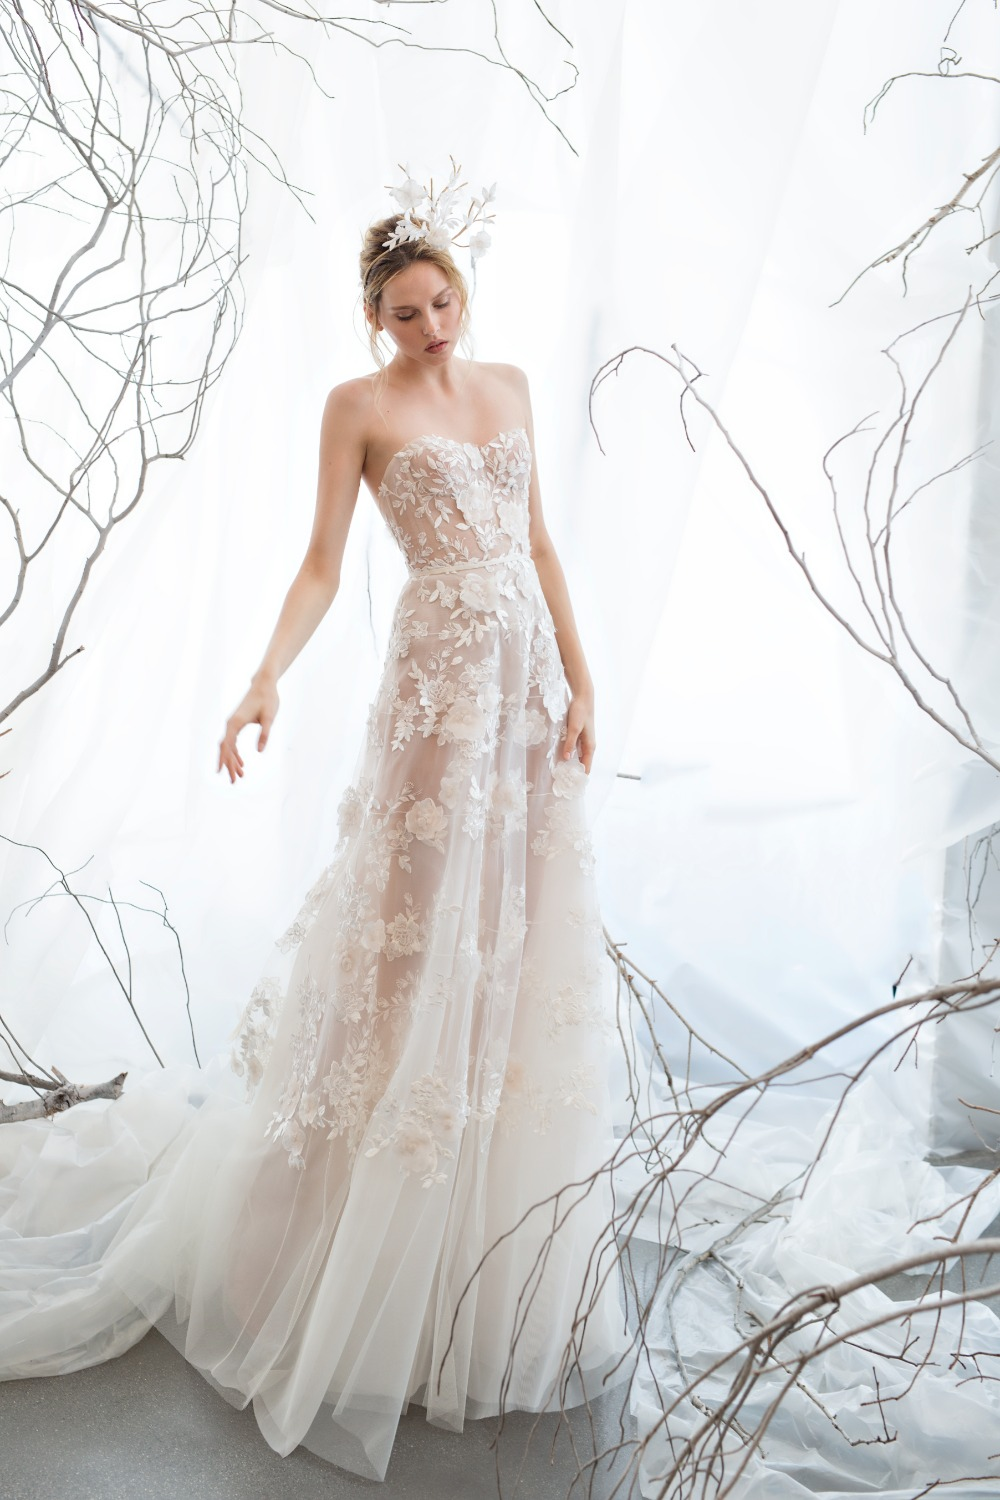 romantic wedding gown by Mira Zwillinger